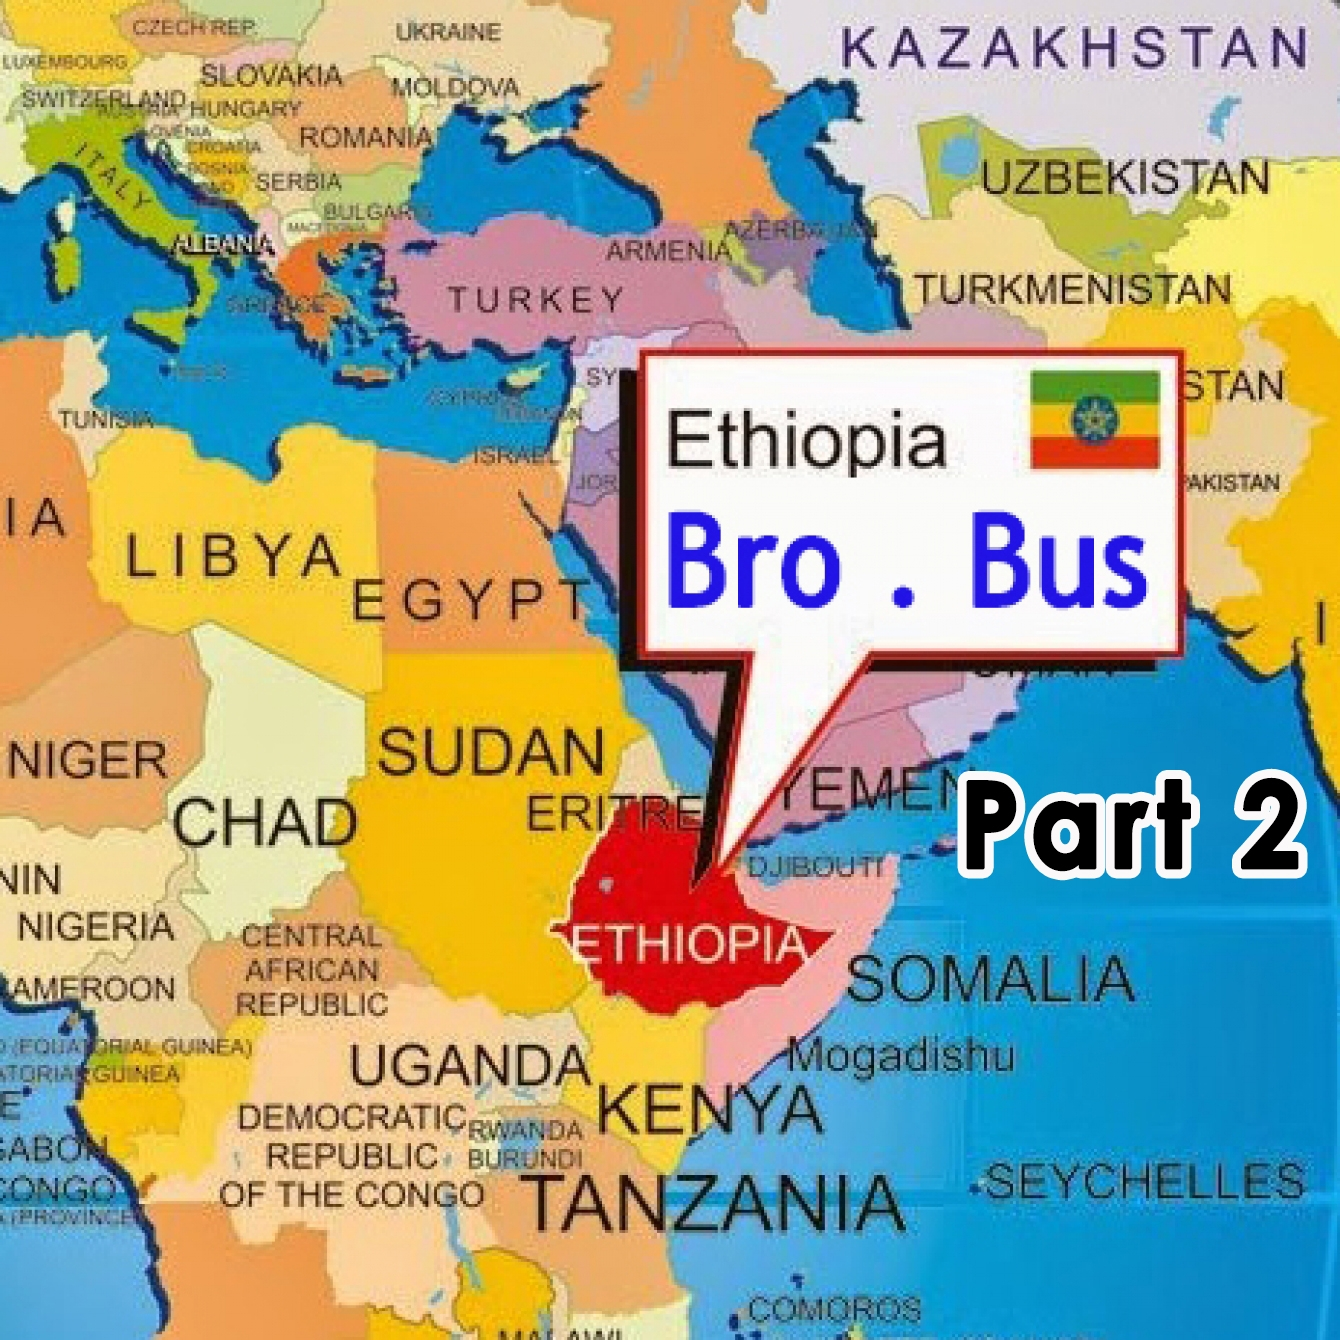 Interview With Bro. Bus - Missionary To Ethiopia - Part 2